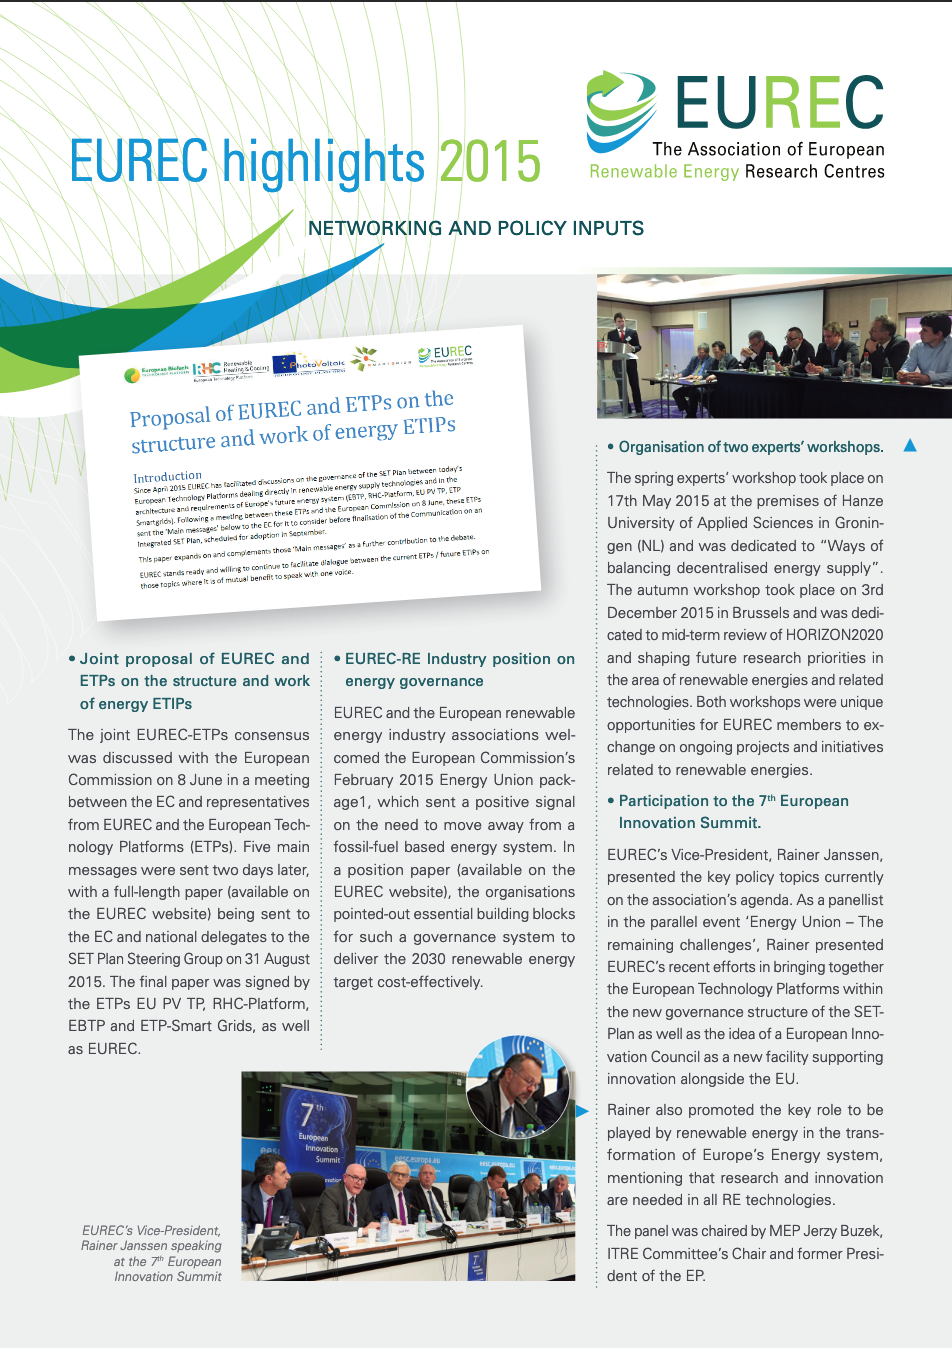 EUREC Highlights 2015